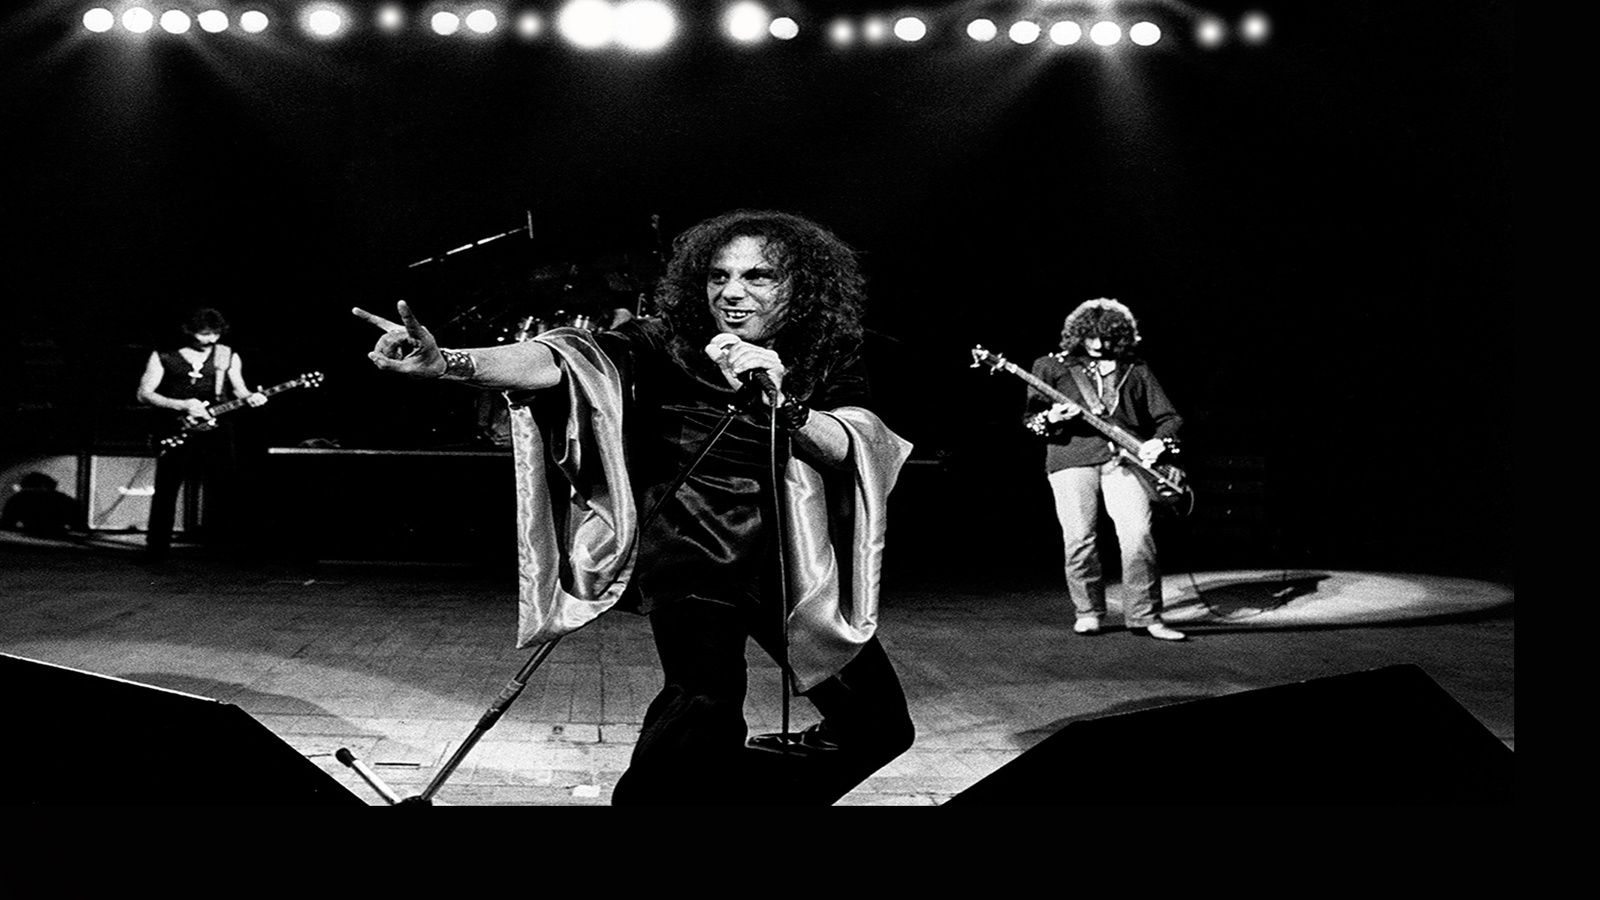 Ronnie James Dio - Black Sabbath on stage